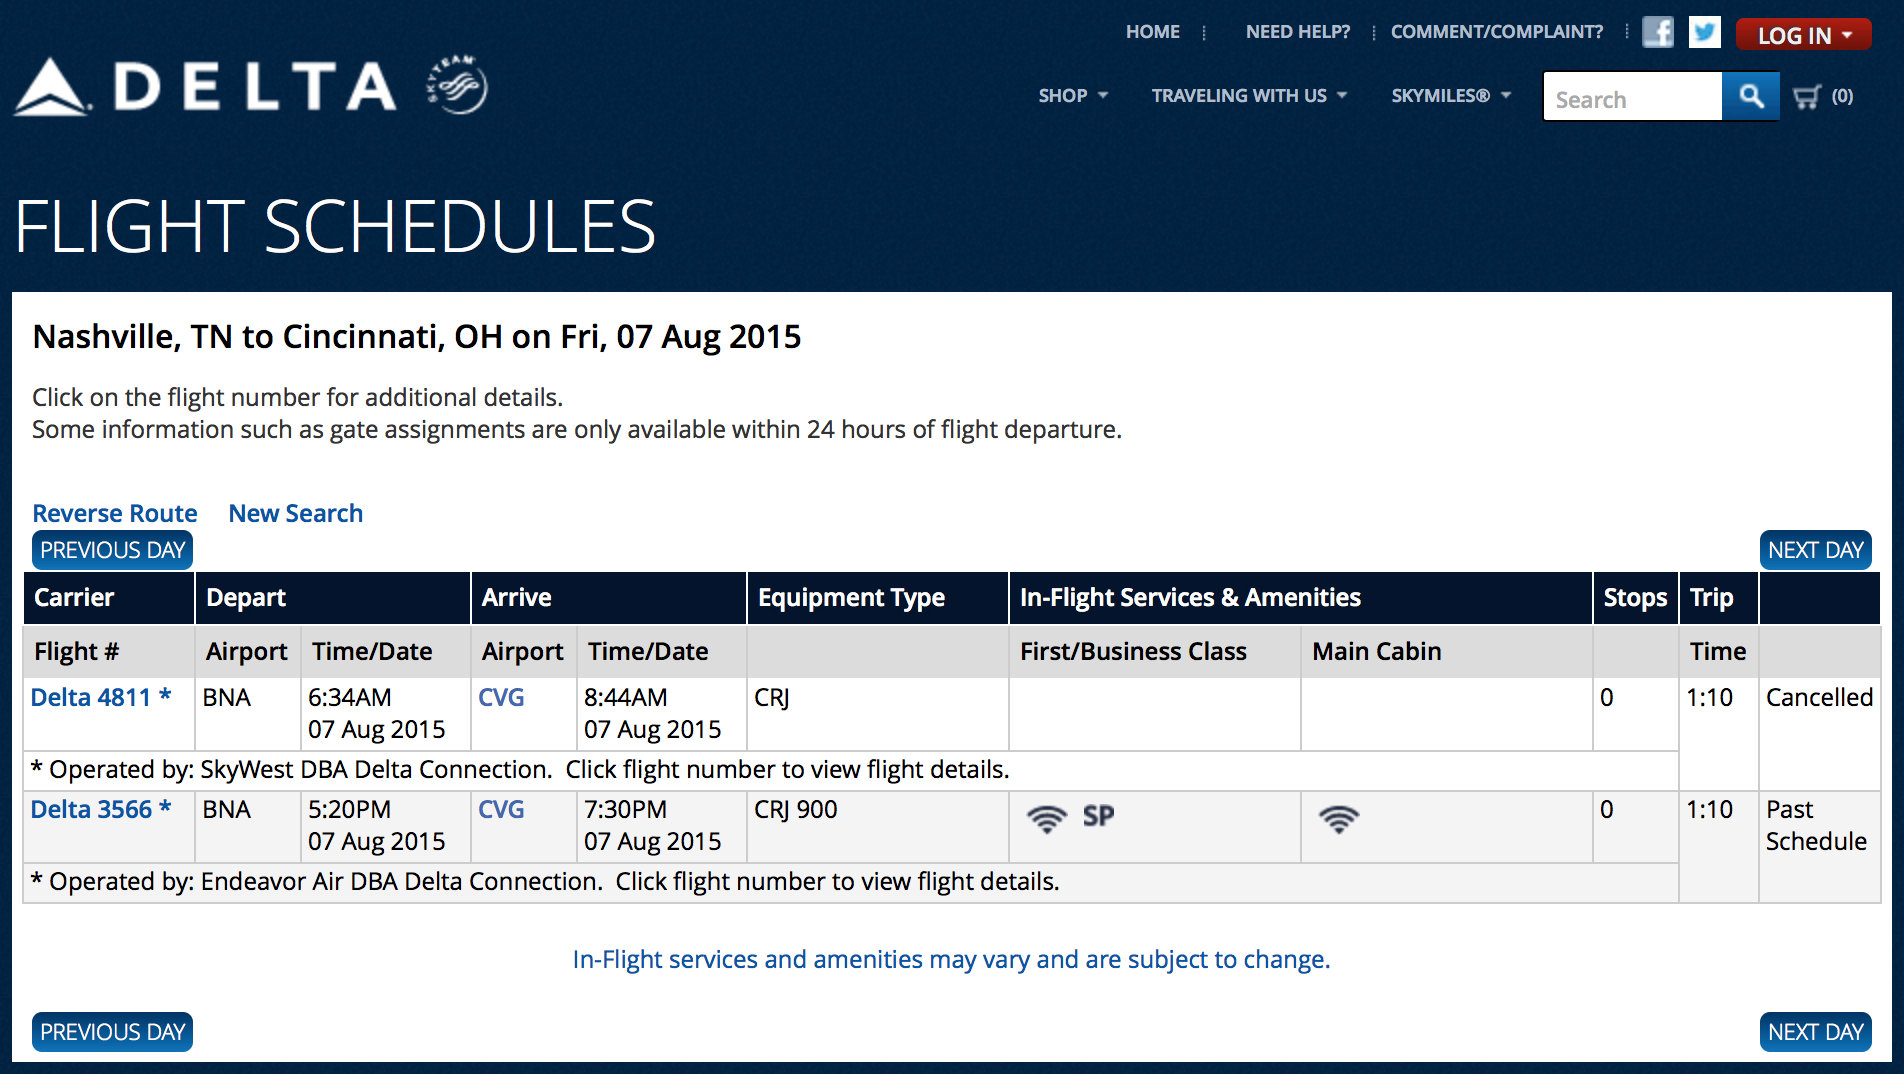 The aircraft operating as Delta Air Lines flight 4811 was cancelled as a result of the incident. Source: The official Internet web site of Delta Air Lines.